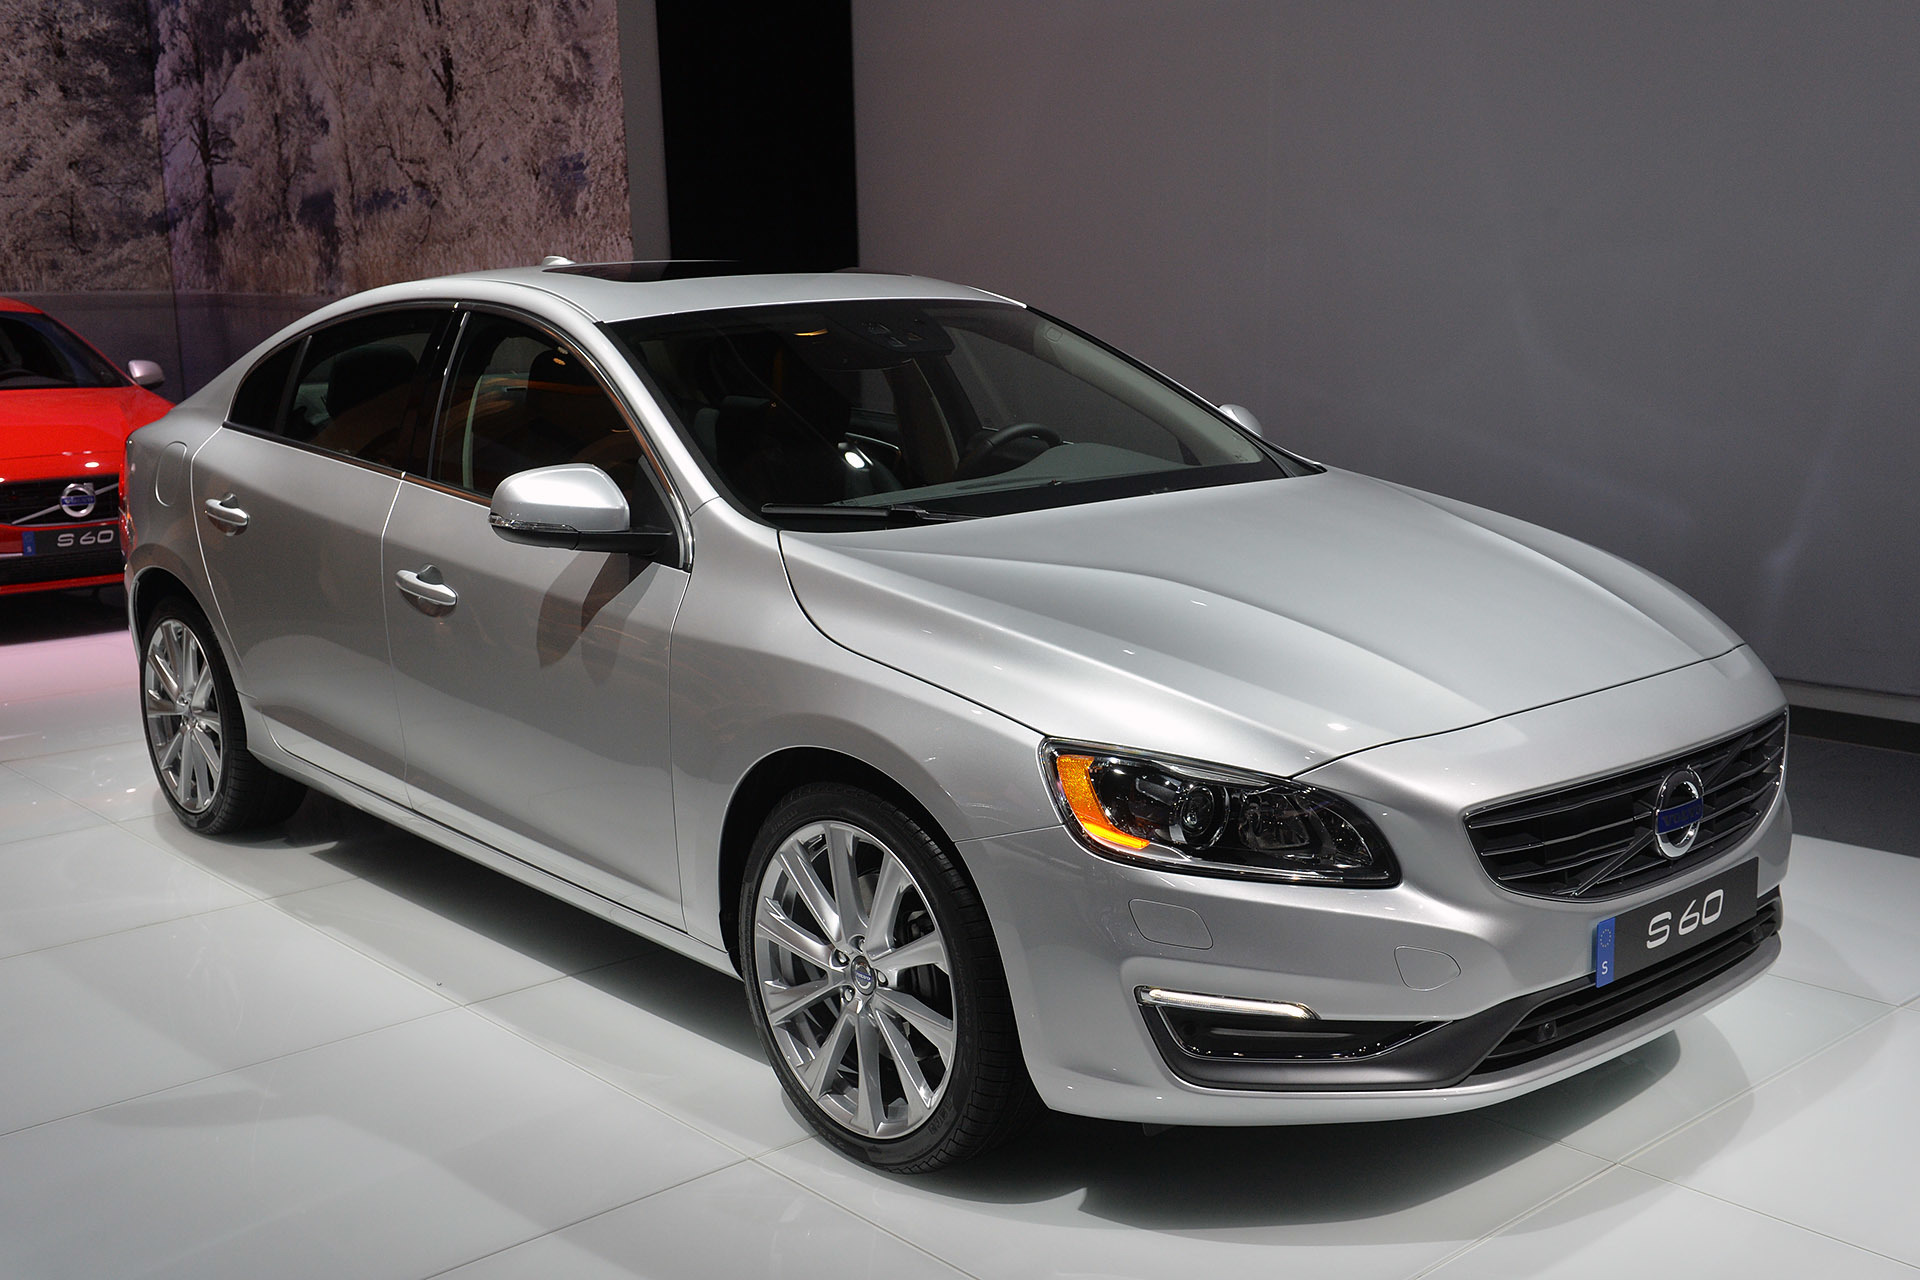 2015 volvo s60 inscription detroit 2015 photo gallery autoblog. Black Bedroom Furniture Sets. Home Design Ideas